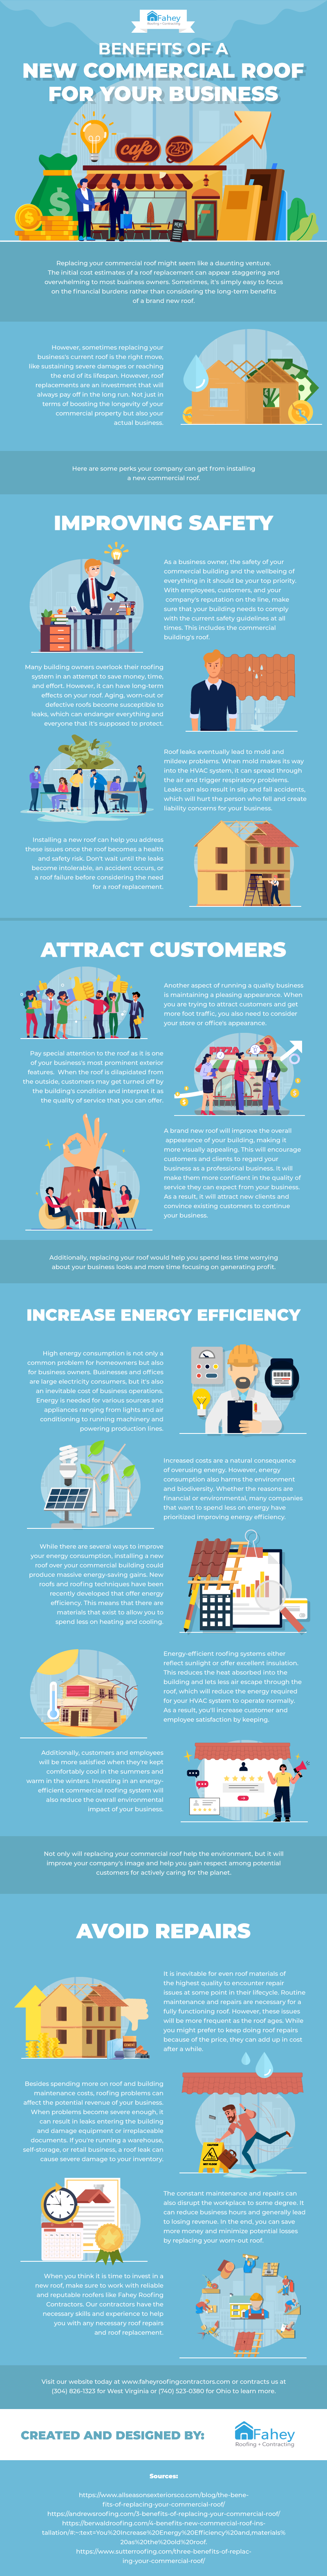 Benefits-of-a-New-Commercial-Roof-For-Your-Business-Infographic